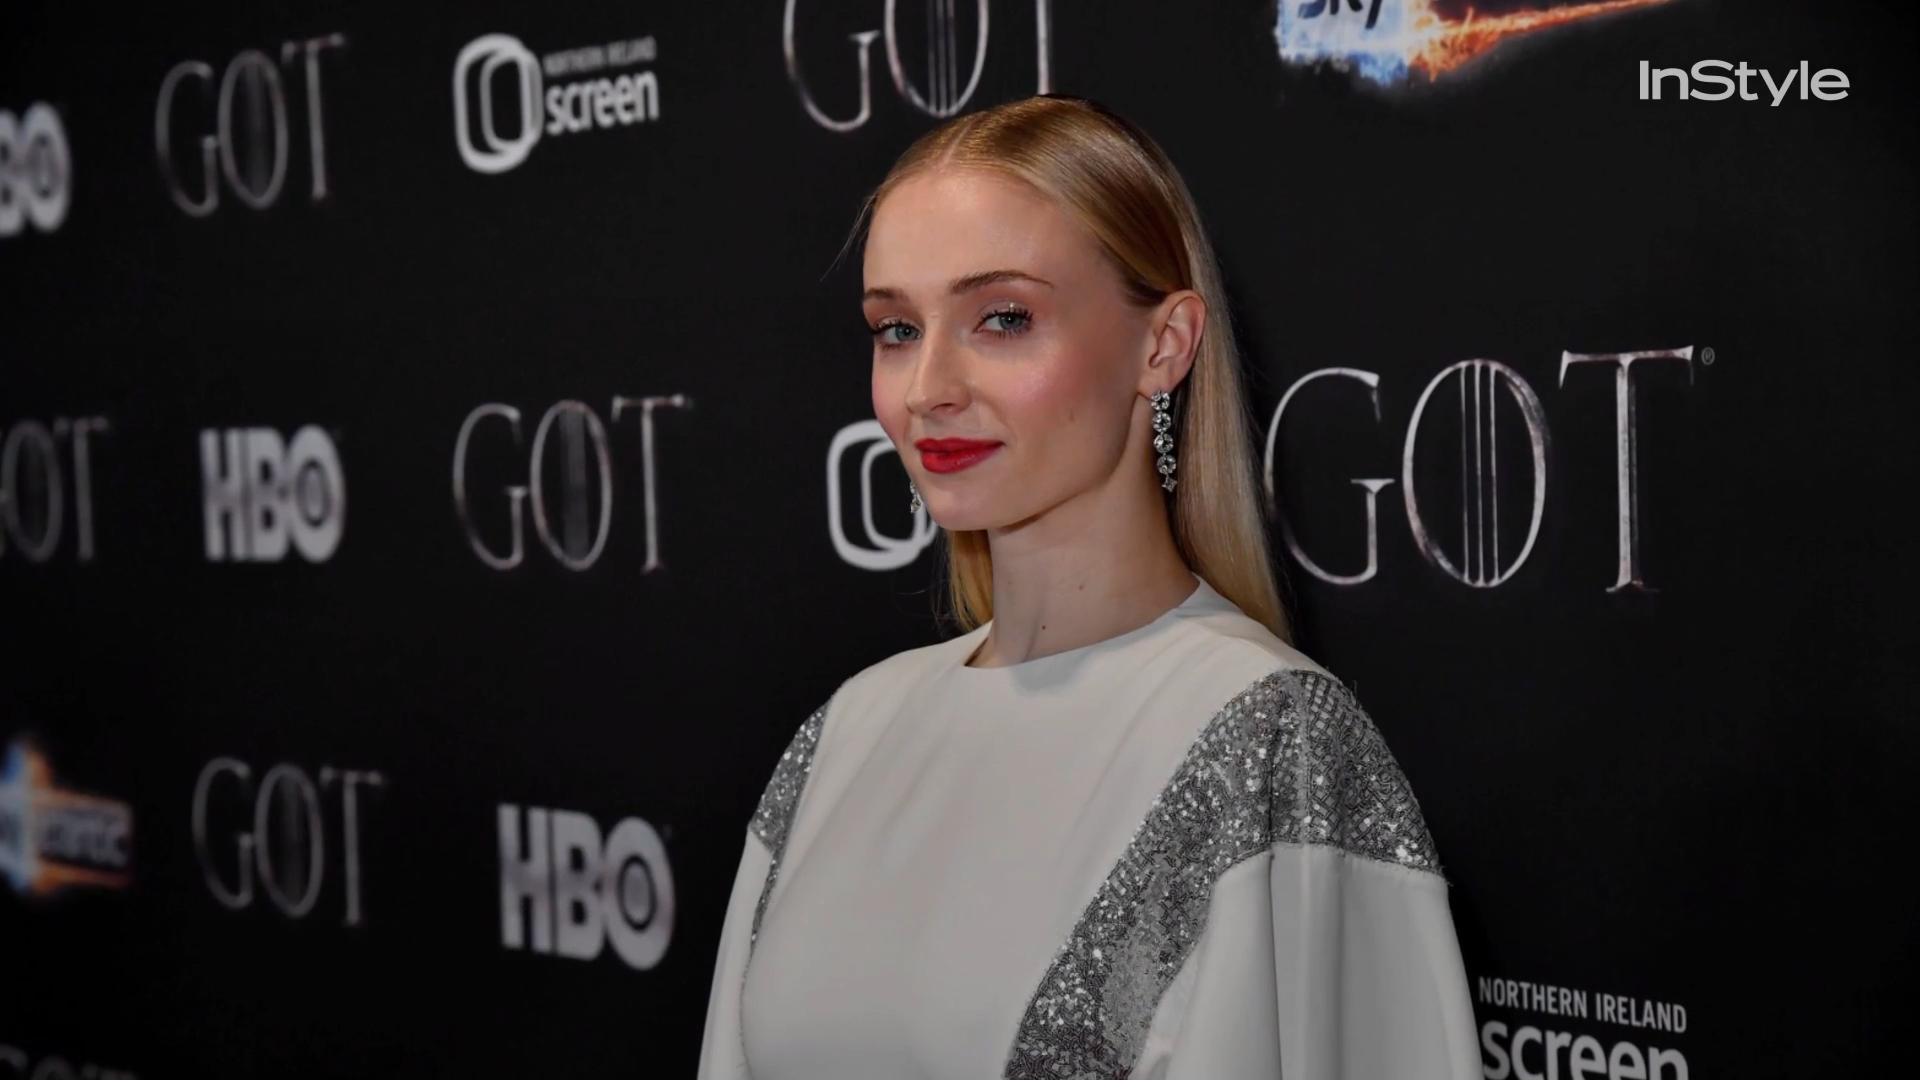 Sophie Turner Revealed Extreme Calorie Counting Caused Her Not to Have Her Period for a Year